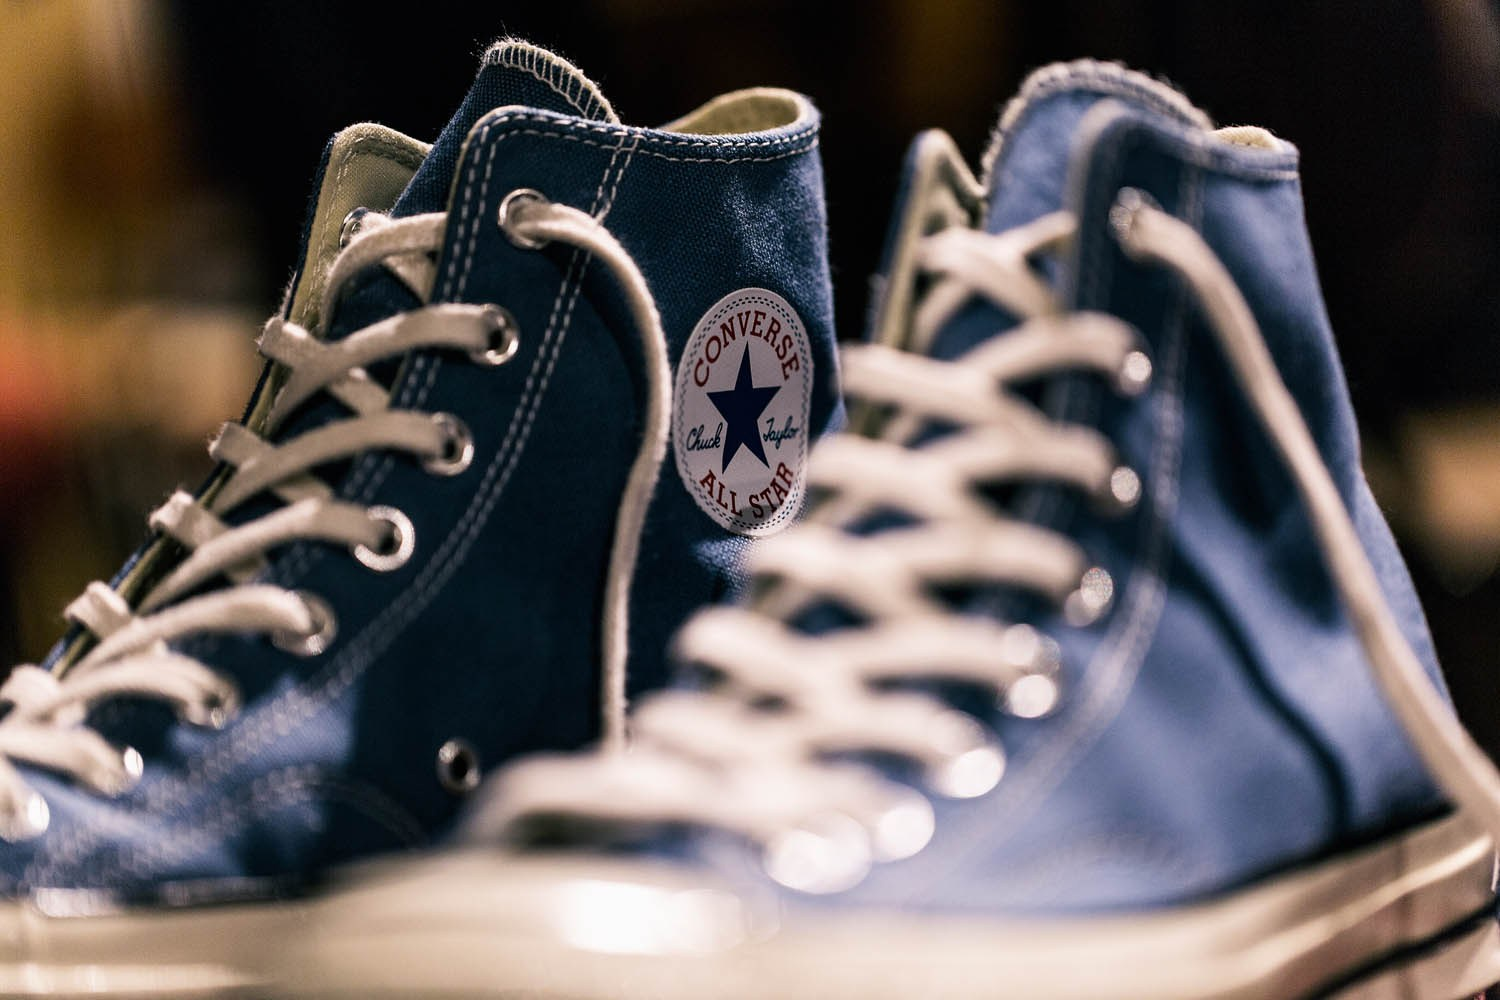 converse-shows-its-colors-with-its-latest-chuck-taylor-all-star-70s-release-6